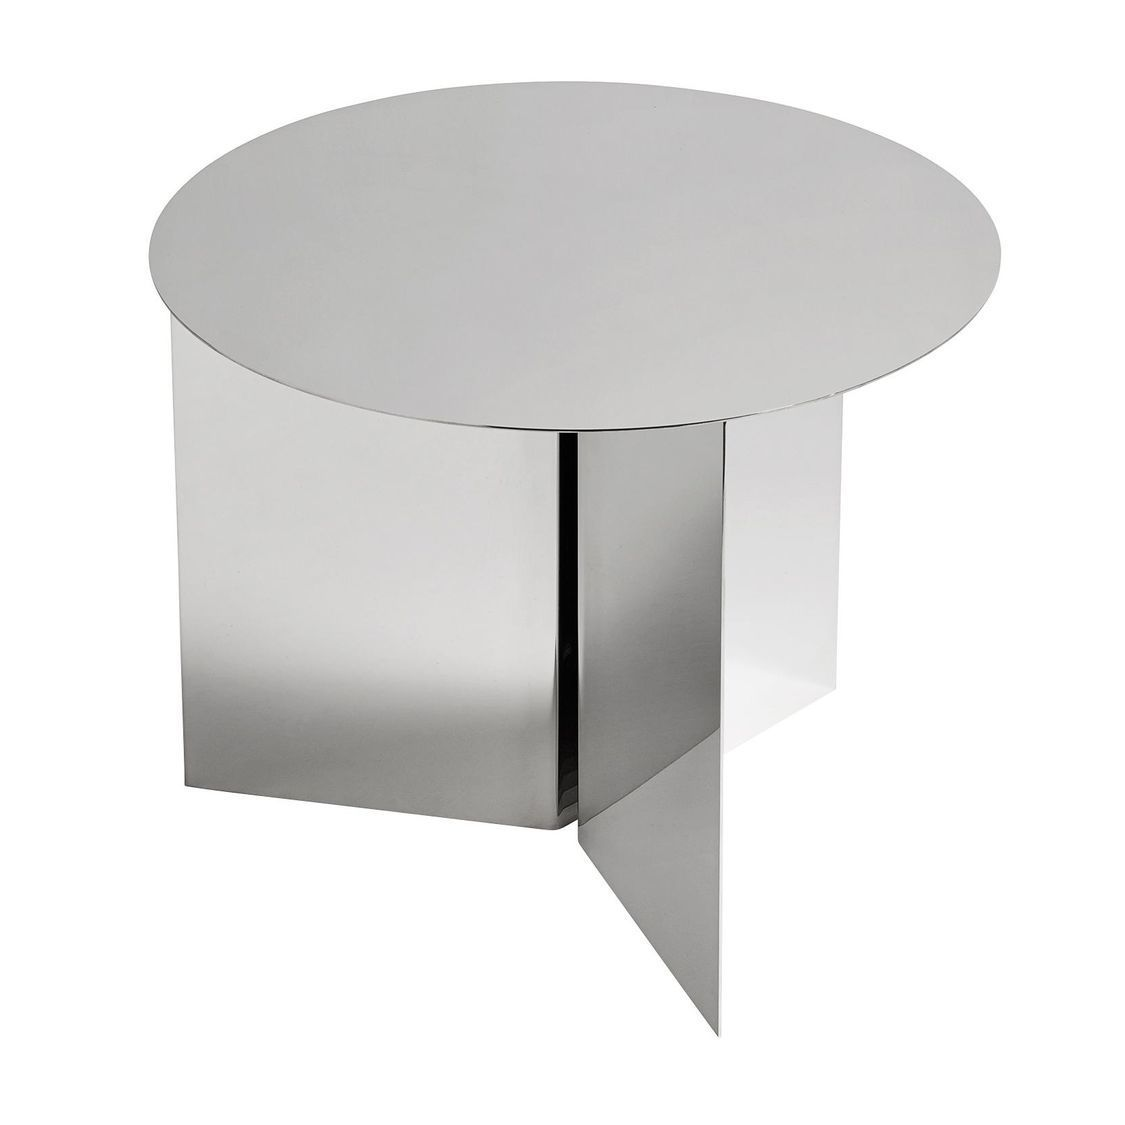 Slit table round table d 39 appoint hay - Table d appoint miroir ...